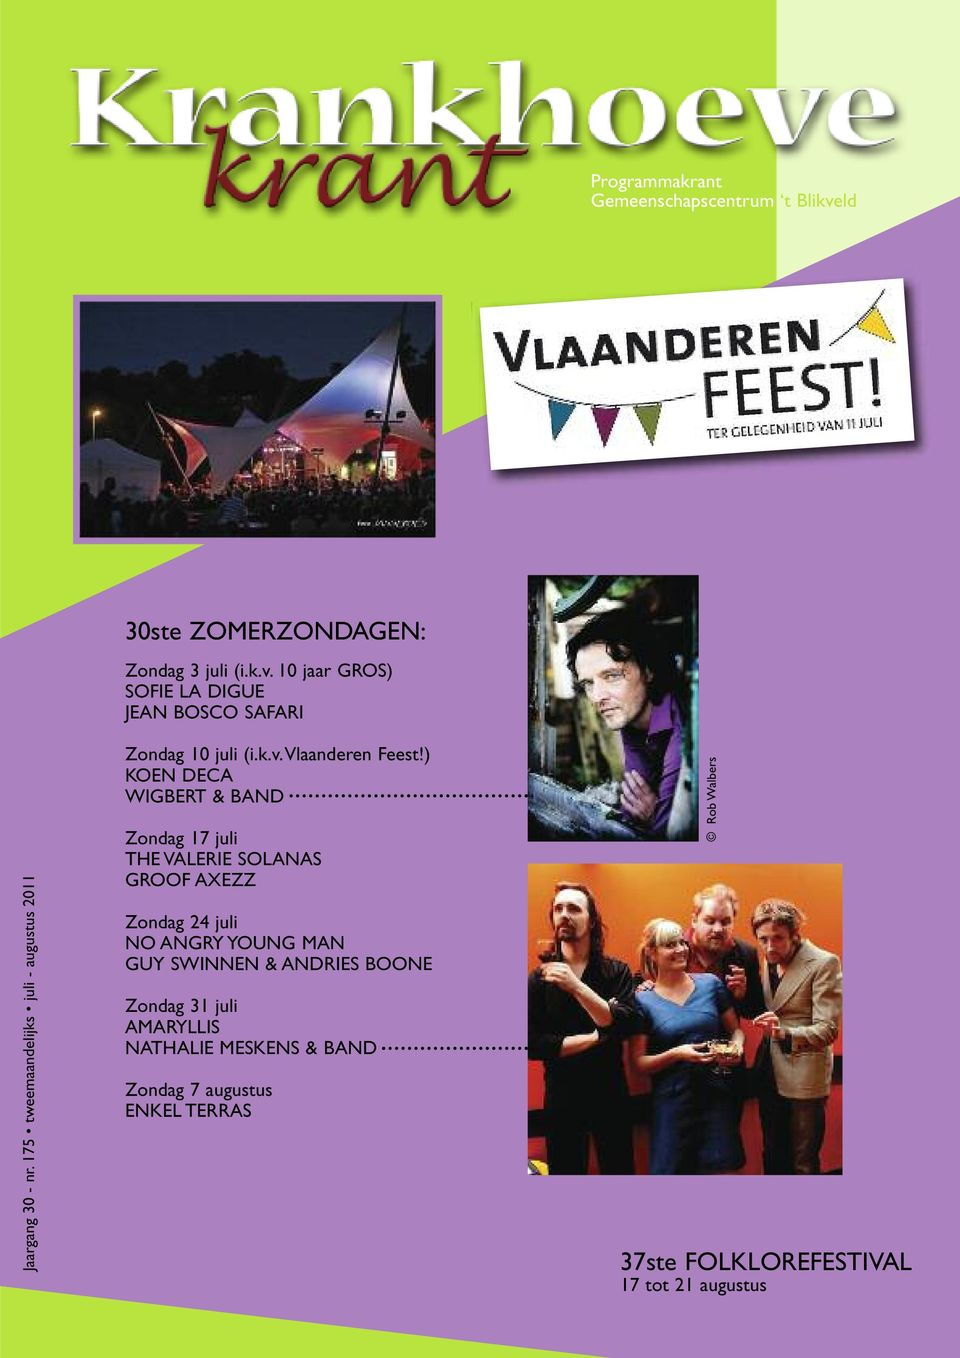 ) KOEN DECA WIGBERT & BAND Zondag 17 juli THE VALERIE SOLANAS GROOF AXEZZ Zondag 24 juli NO ANGRY YOUNG MAN GUY SWINNEN &